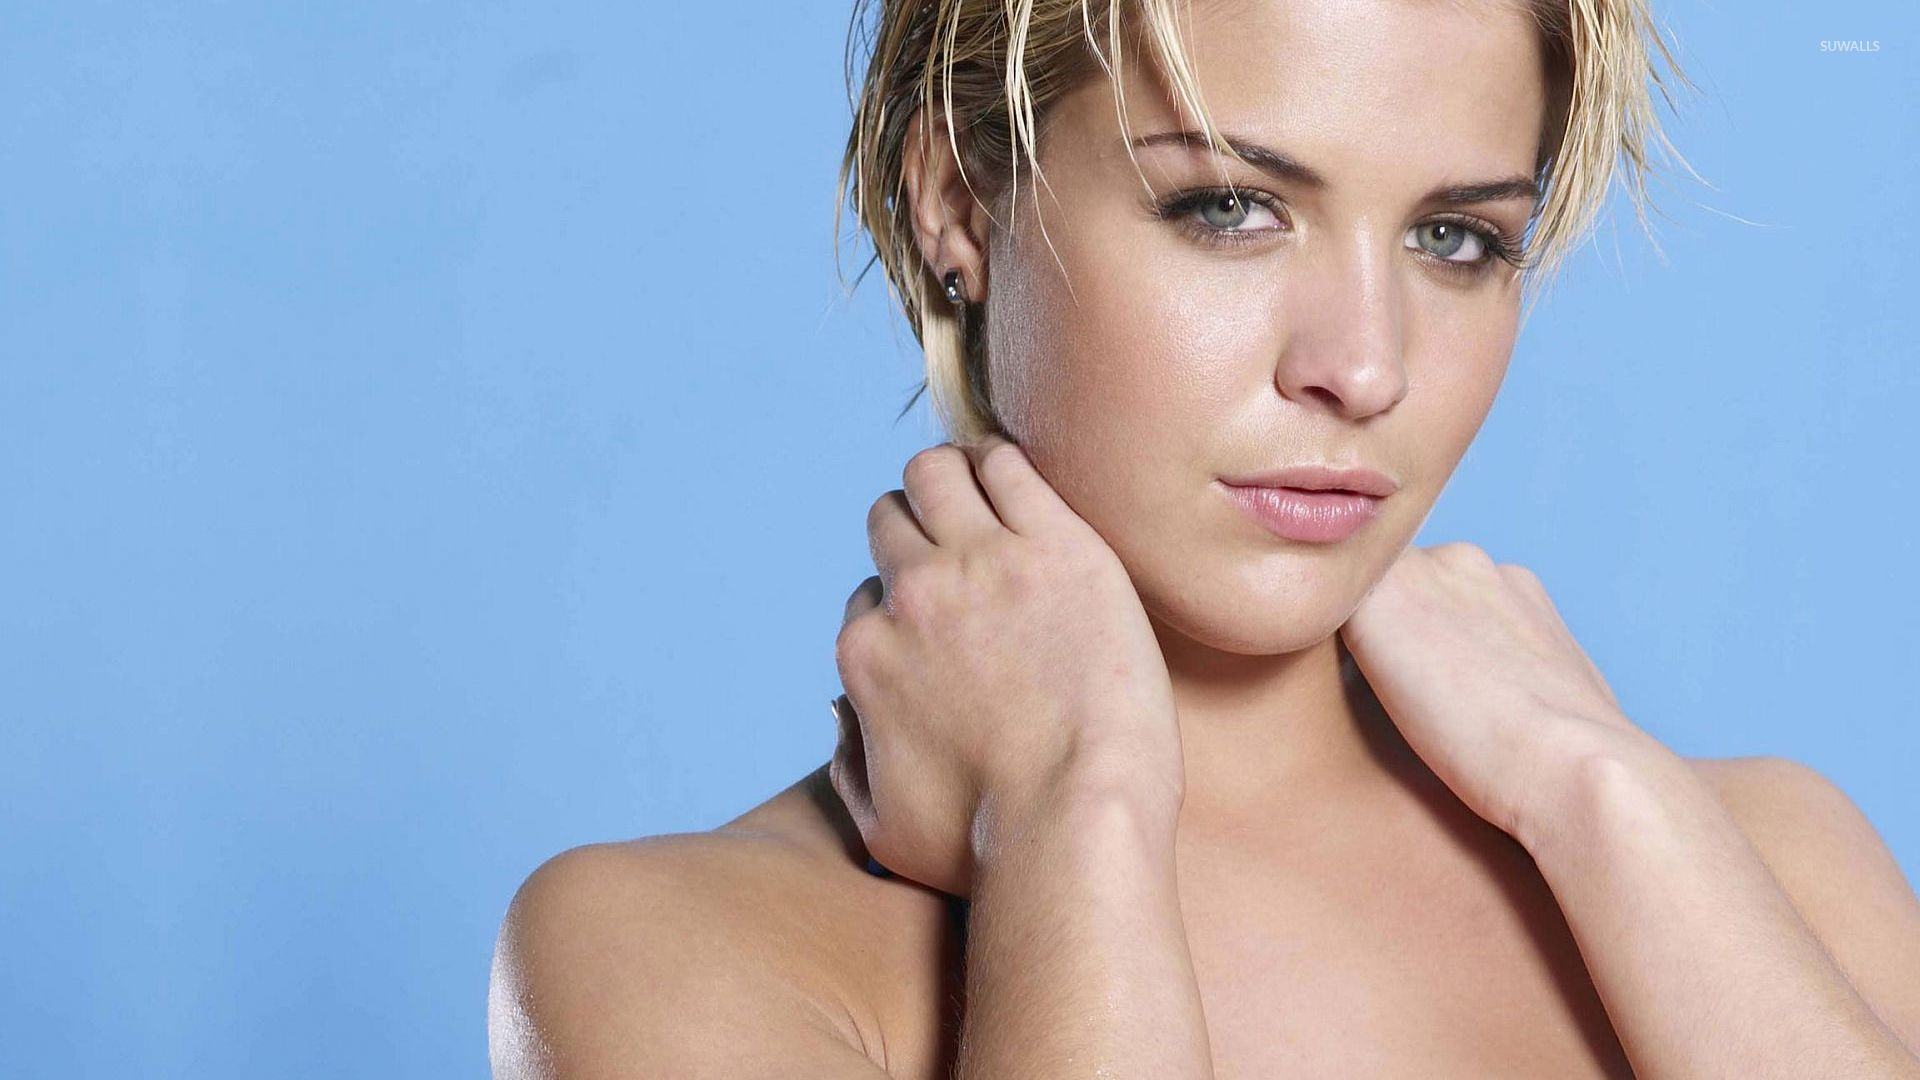 Gemma Atkinson [25] wallpaper - Girl wallpapers - #4300